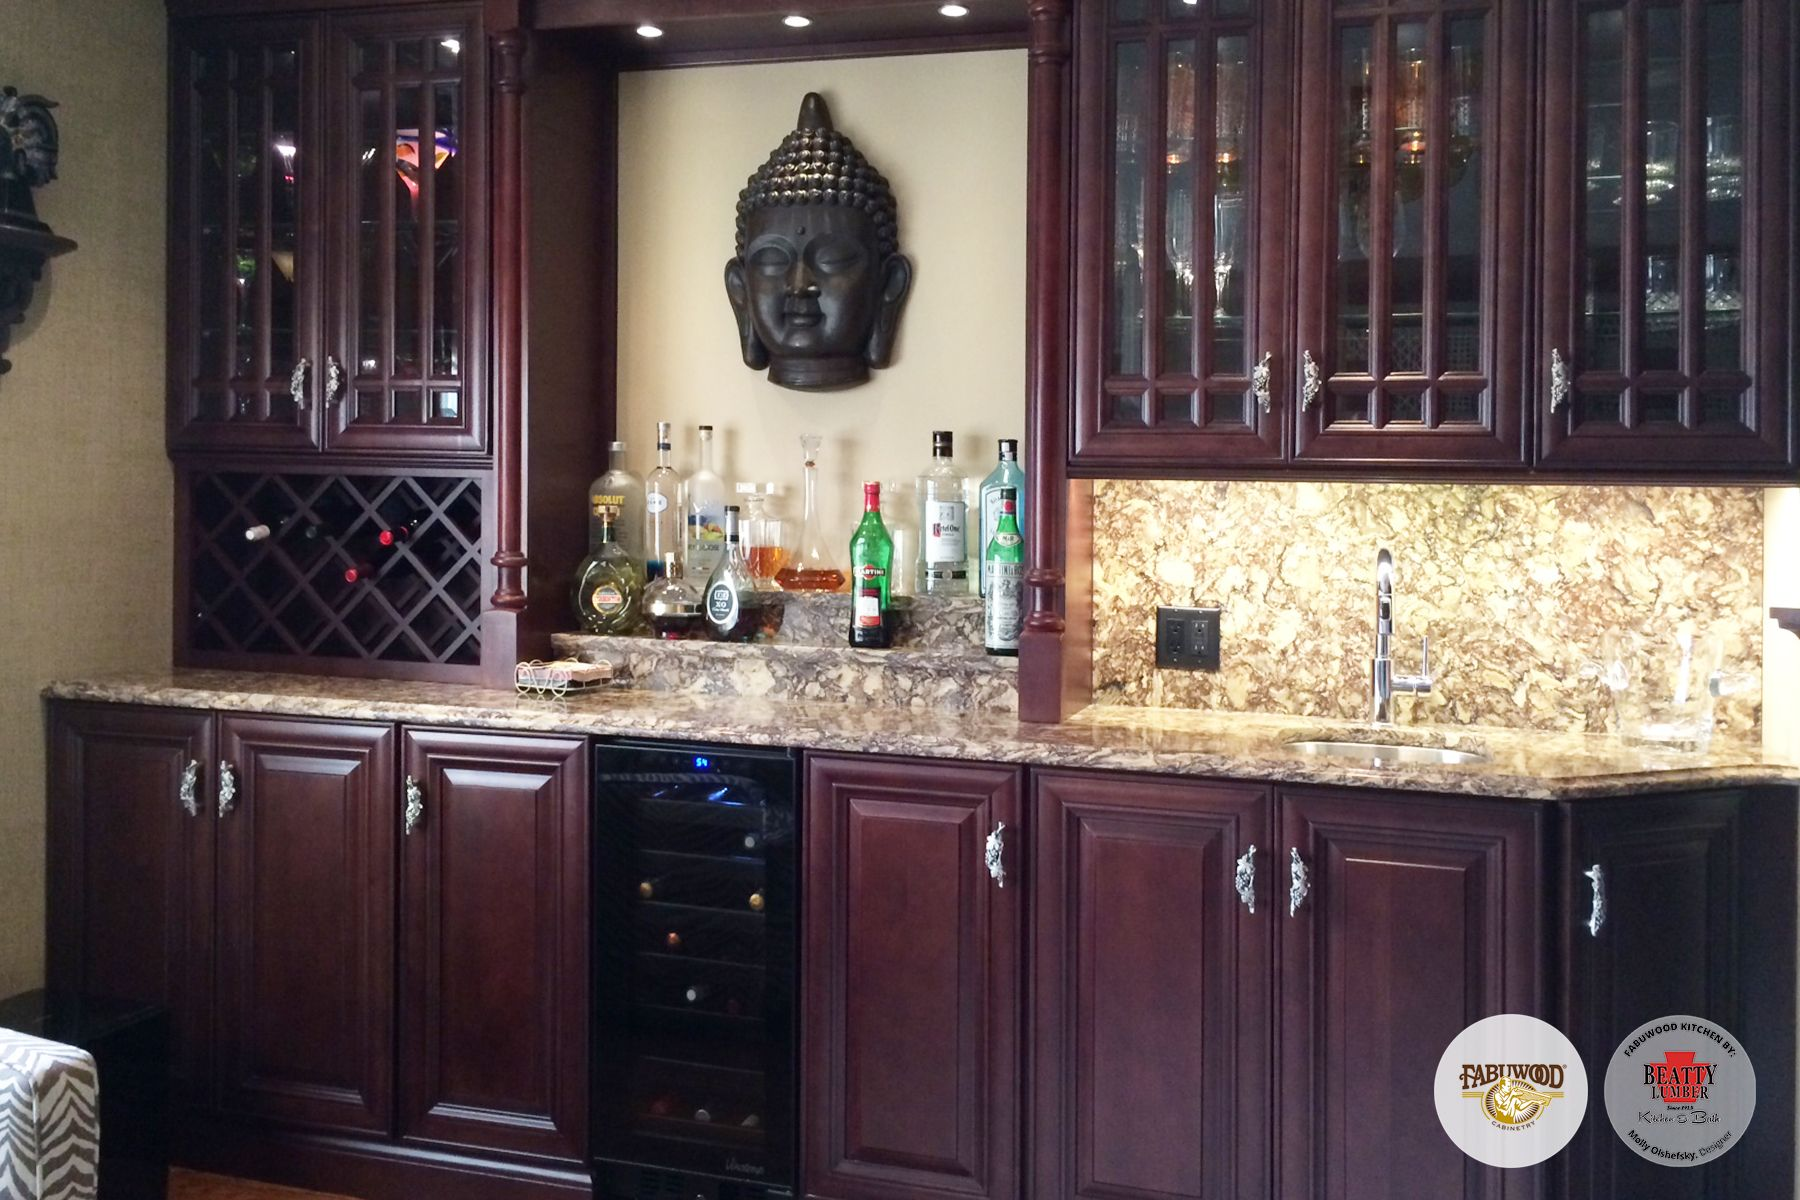 We Love The Richness Of This Elite Merlot Cabinetry And What It Adds To The Home Fabuwood Kitchen Inspirations Kitchen Cabinets In Bathroom Kitchen Cabinetry